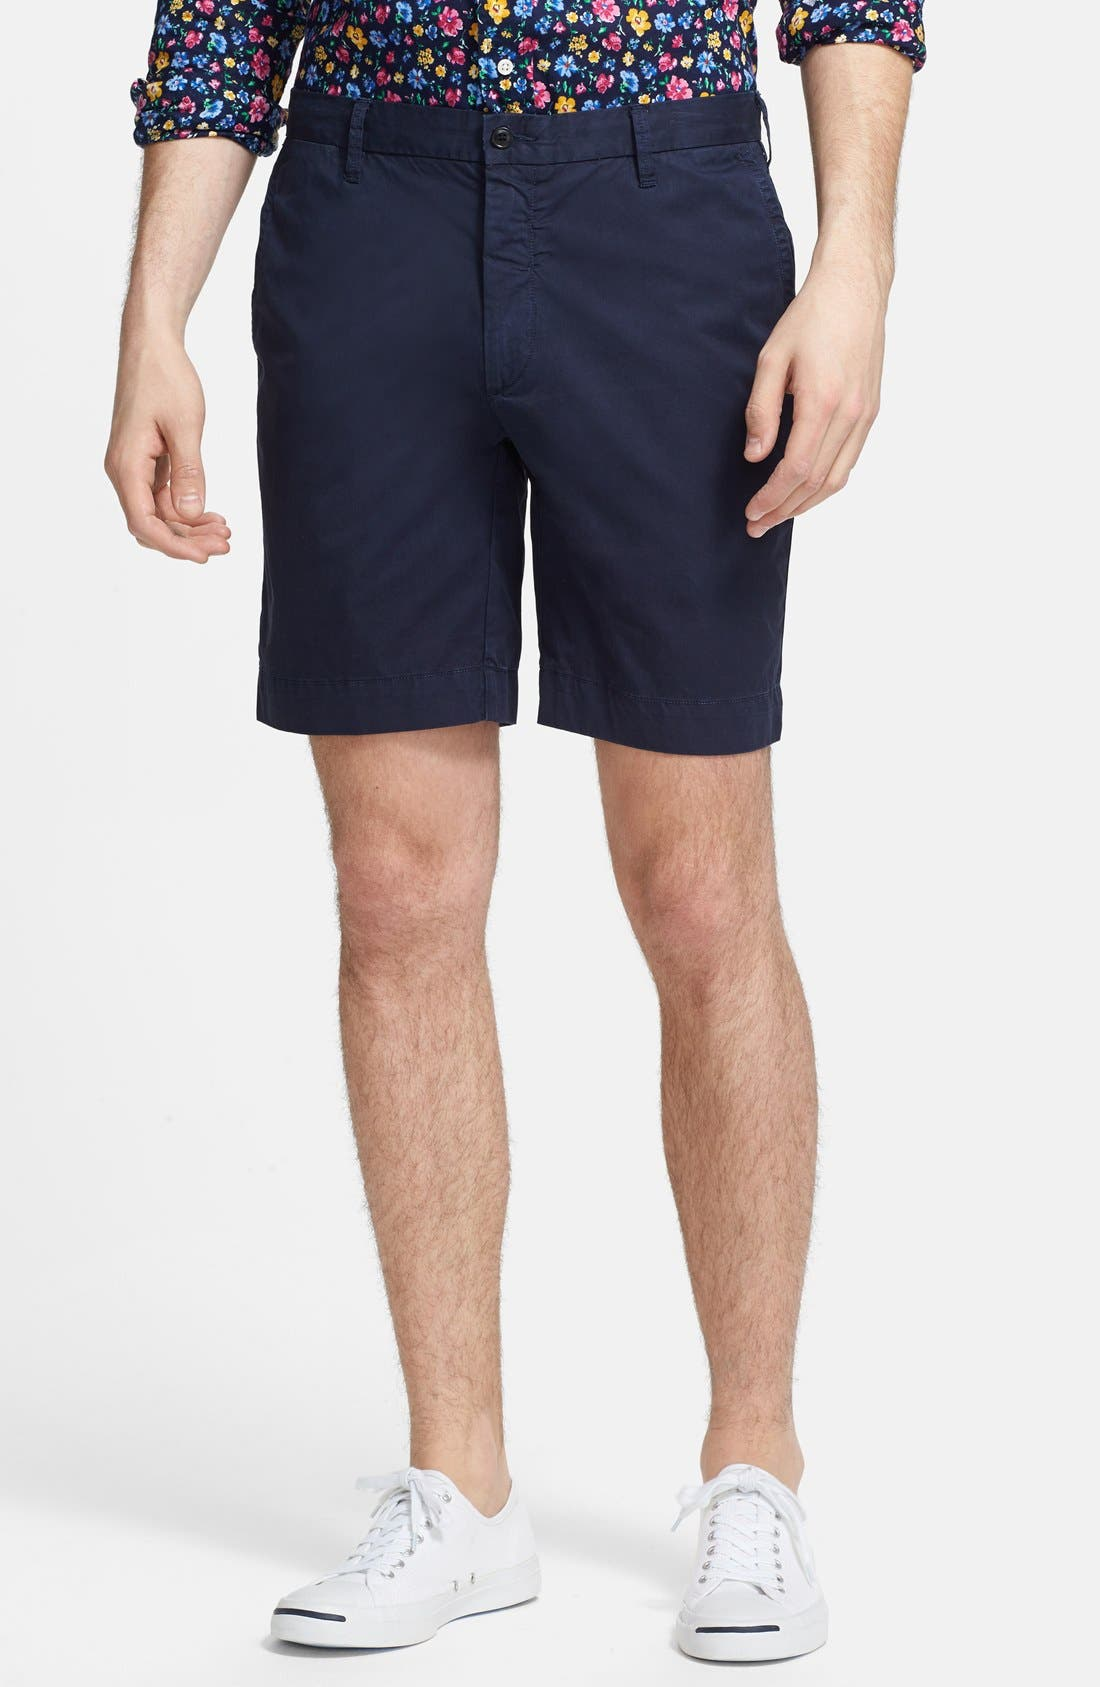 Alternate Image 1 Selected - Polo Ralph Lauren 'Hudson' Flat Front Classic Fit Chino Shorts